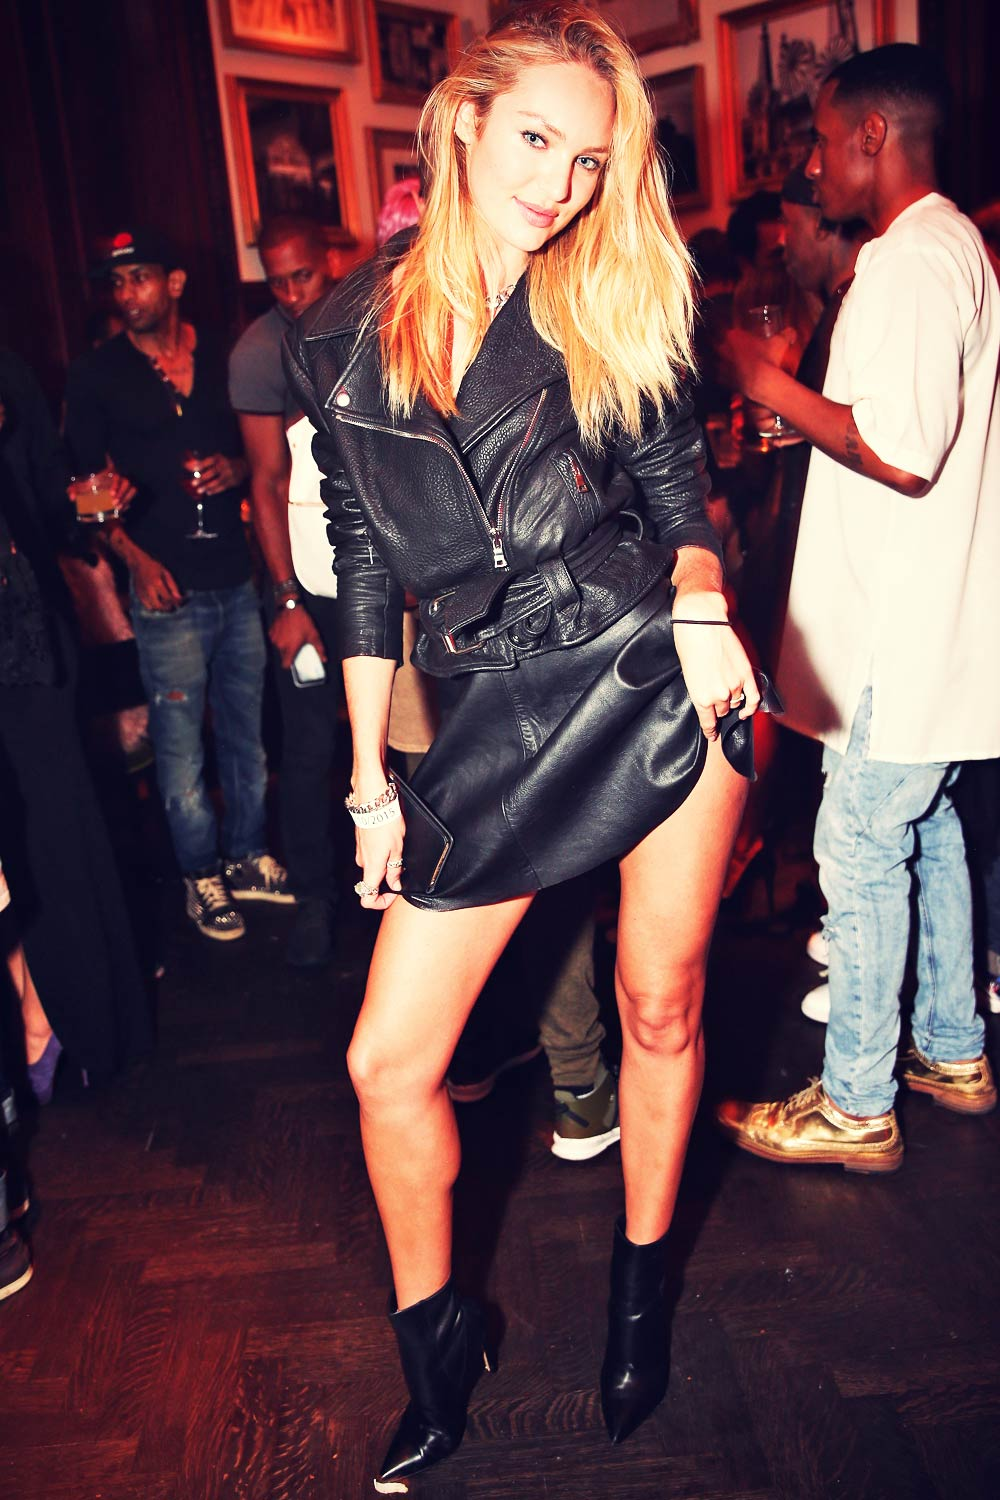 Candice Swanepoel Attends Rihanna Party Leather Celebrities